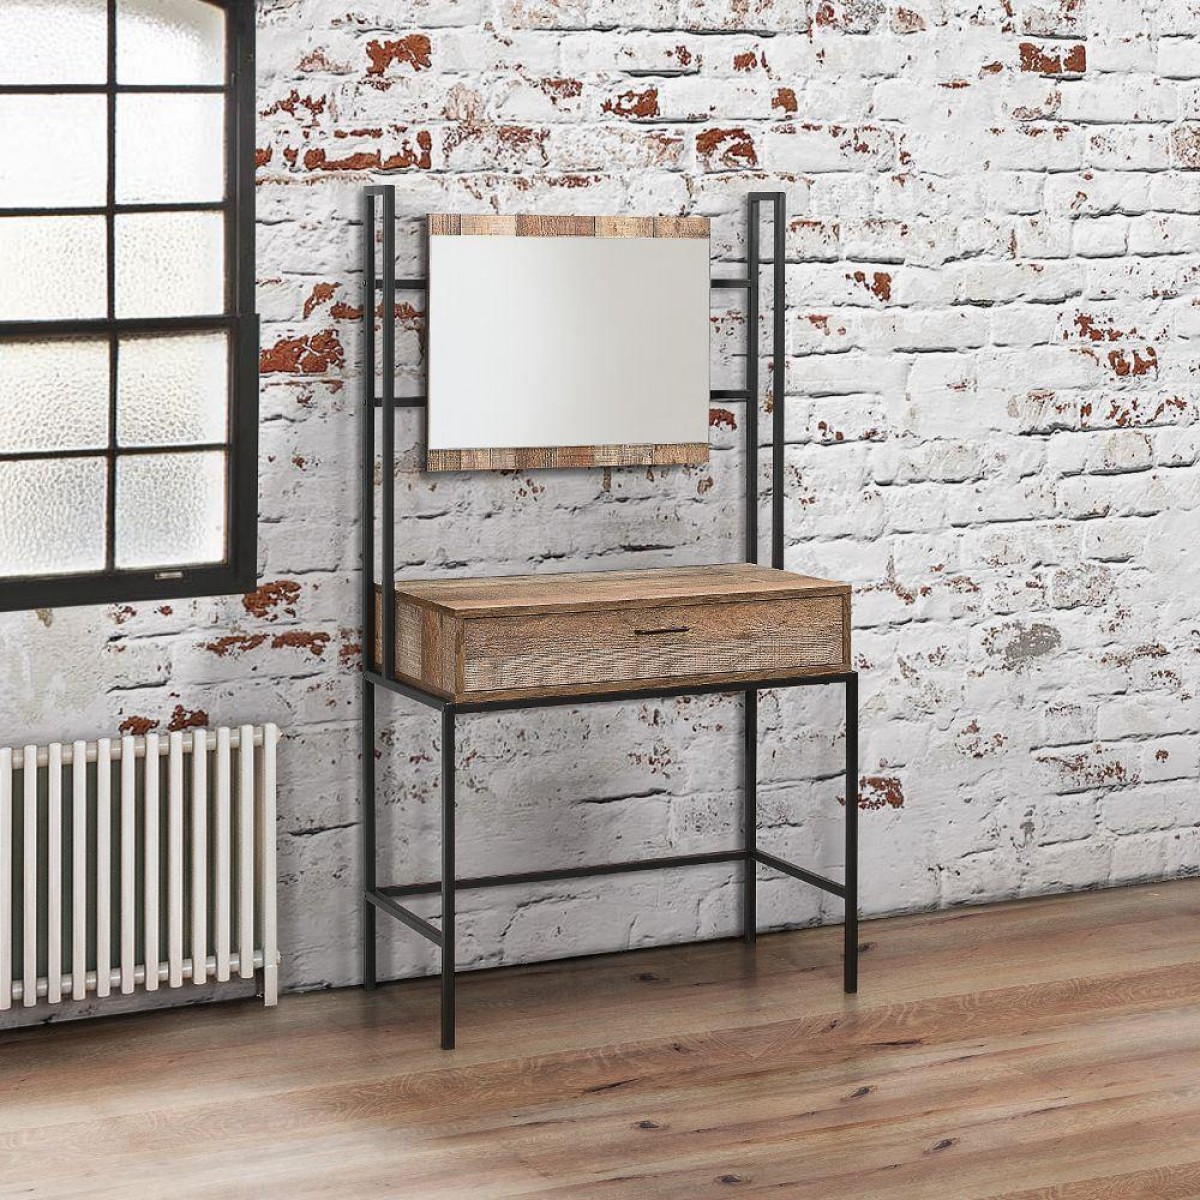 Urban Rustic Dressing Table and Mirror